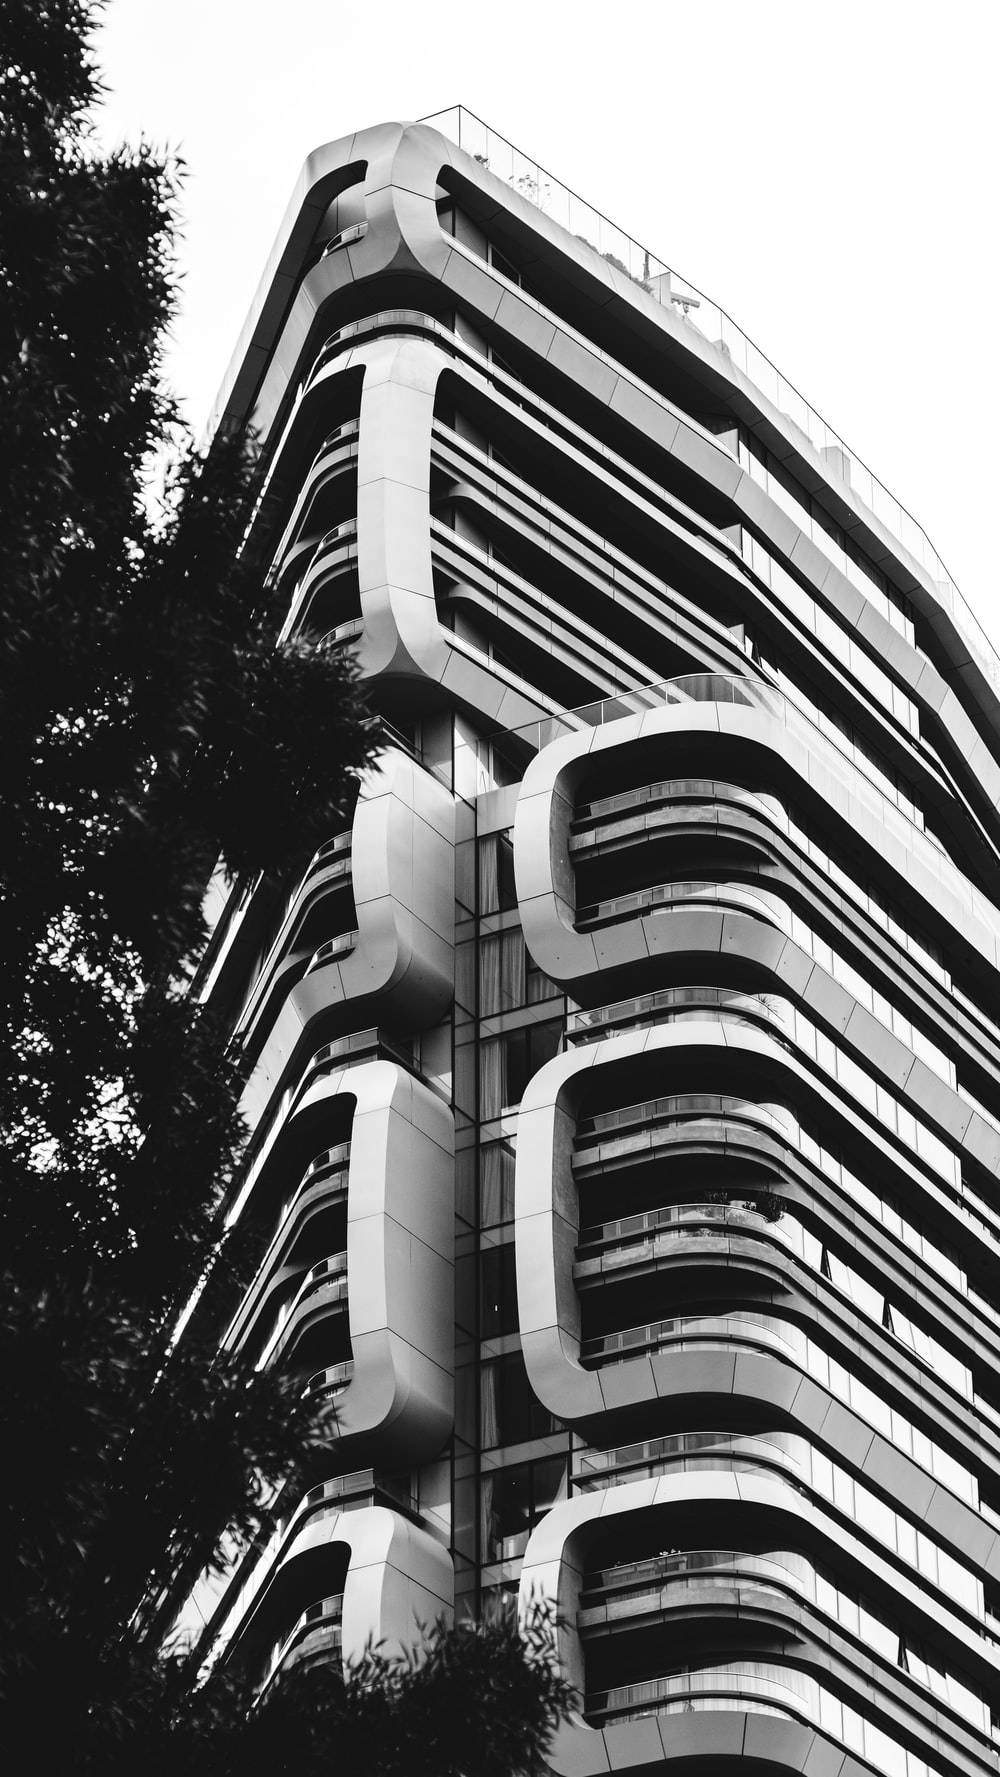 grayscale and low angle photography of concrete building